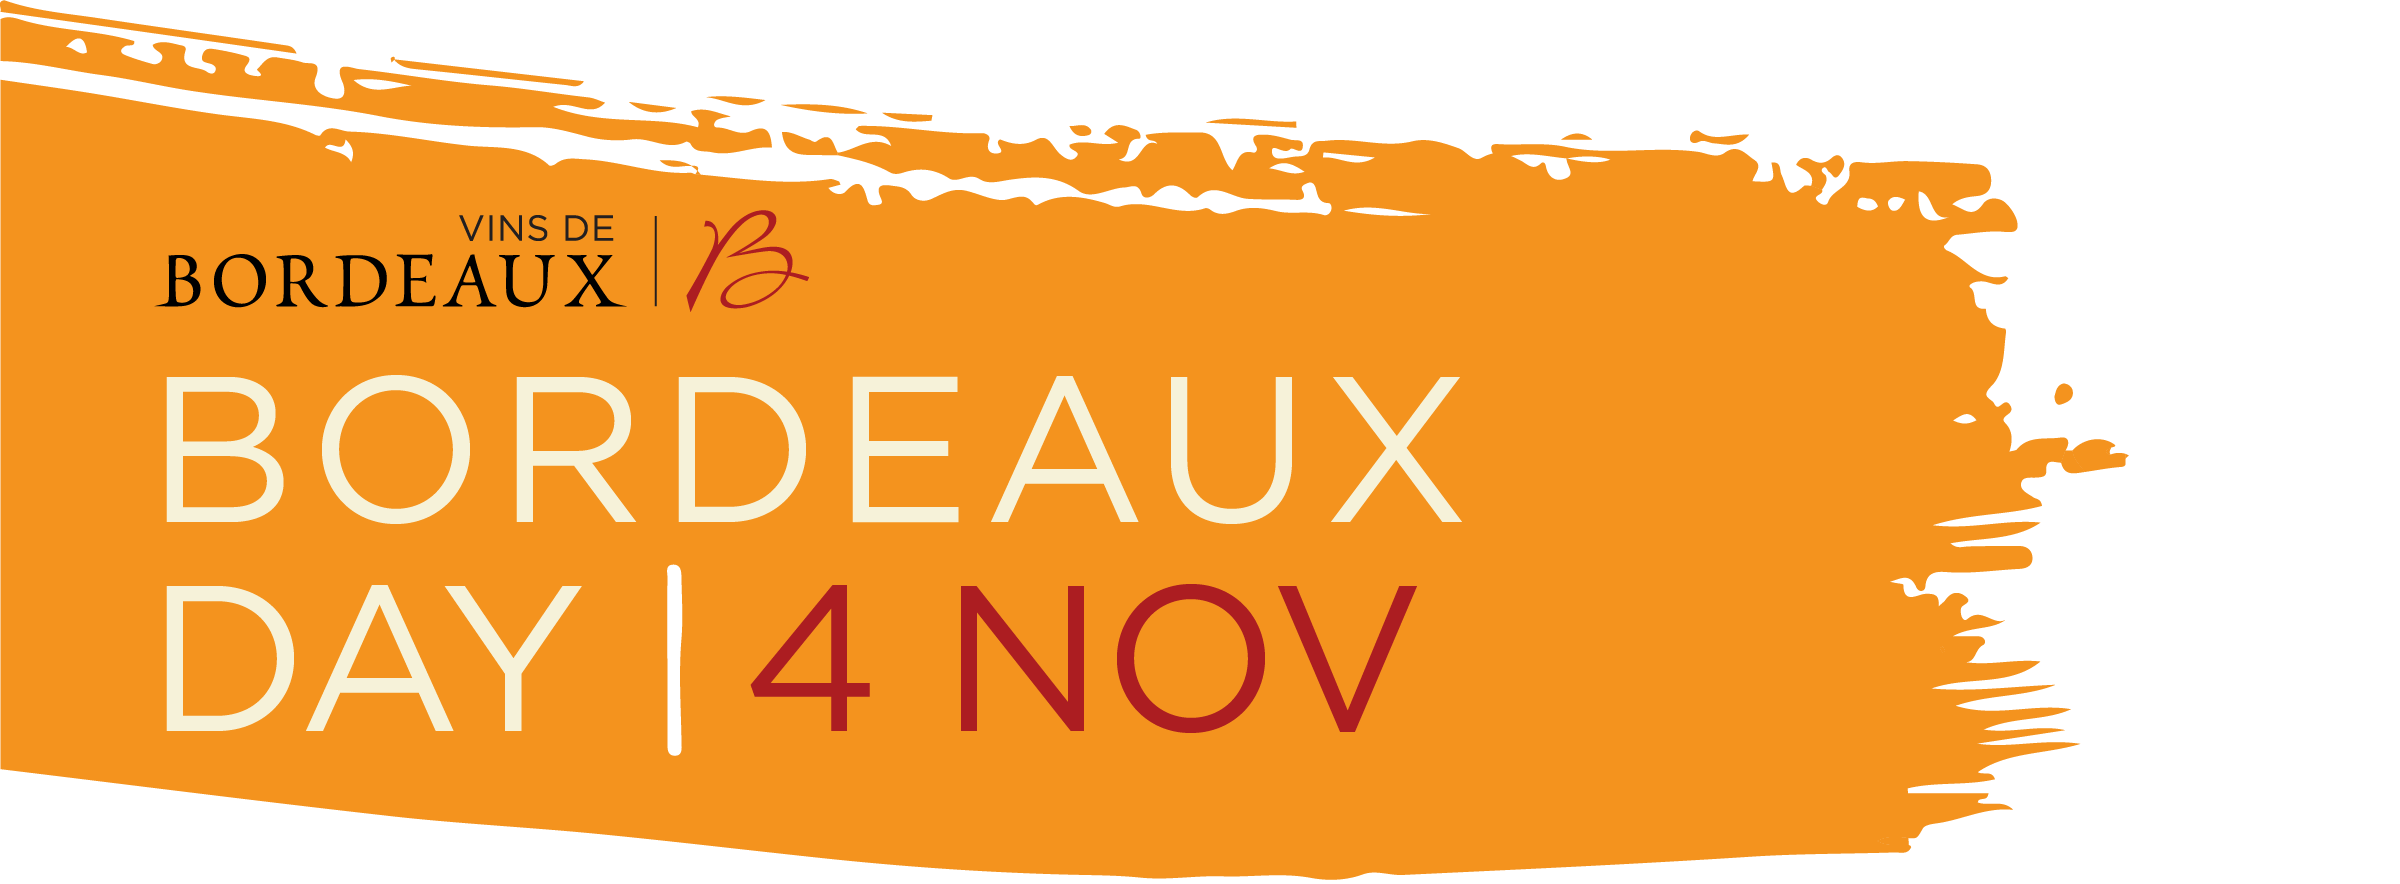 NEW DATE FOR BORDEAUX DAY – WEDNESDAY 4th NOVEMBER